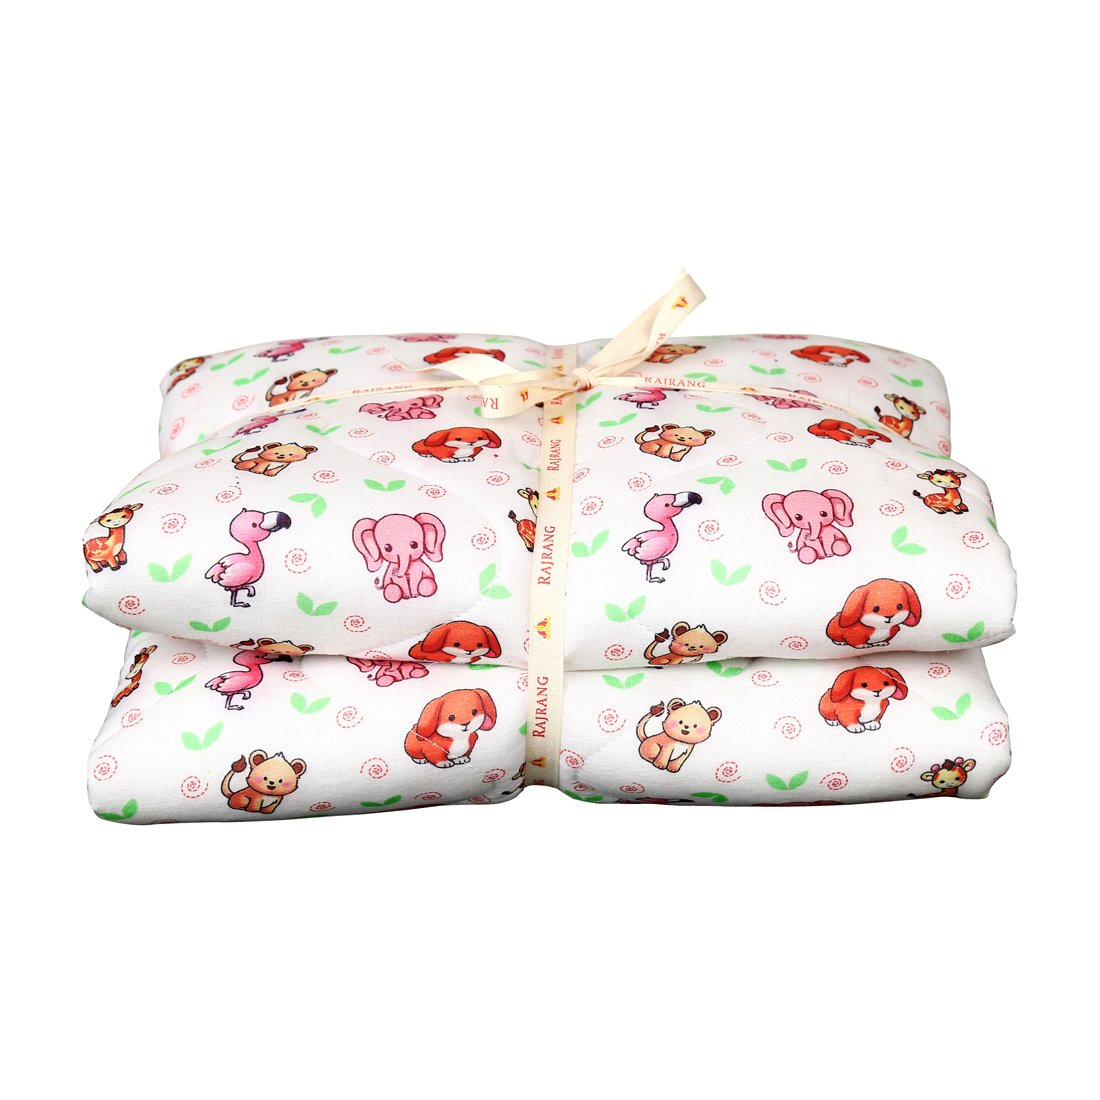 White and Pink Baby Quilt - Warm and Snuggly Toddler Blanket Animal Printed Crib Comforter for New Born Boys & Girls Bed Covers by RAJRANG (Image #2)